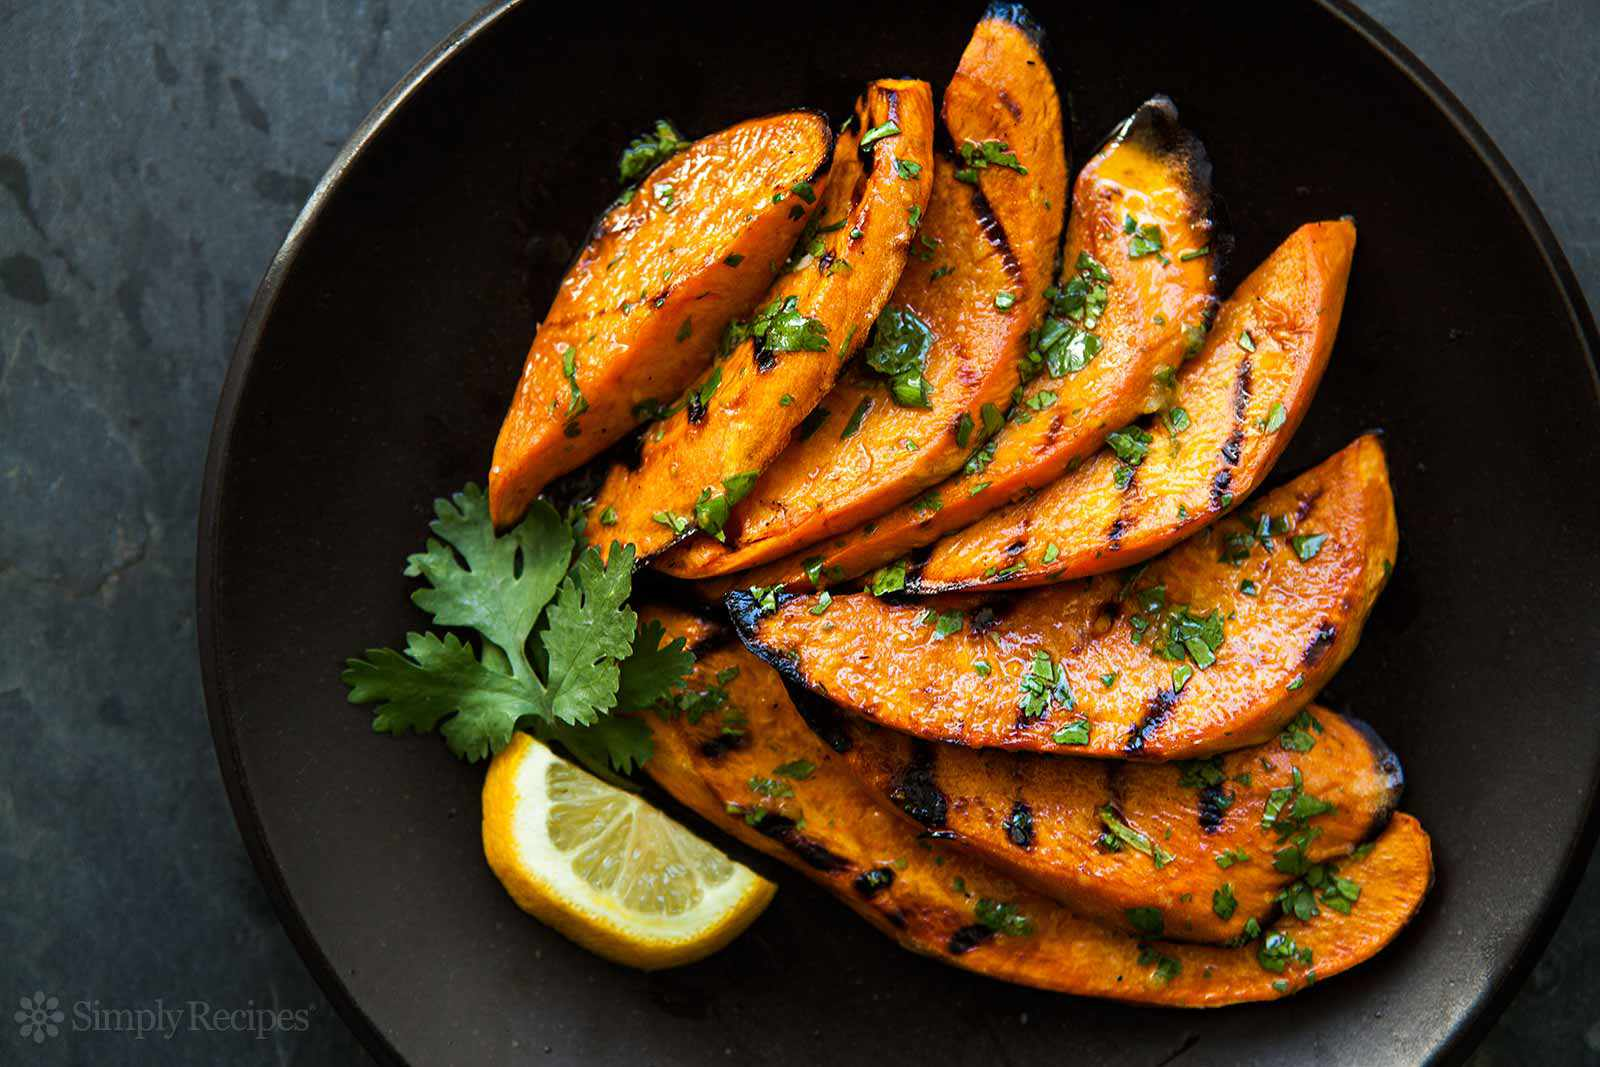 Plate with slices of grilled sweet potatoes